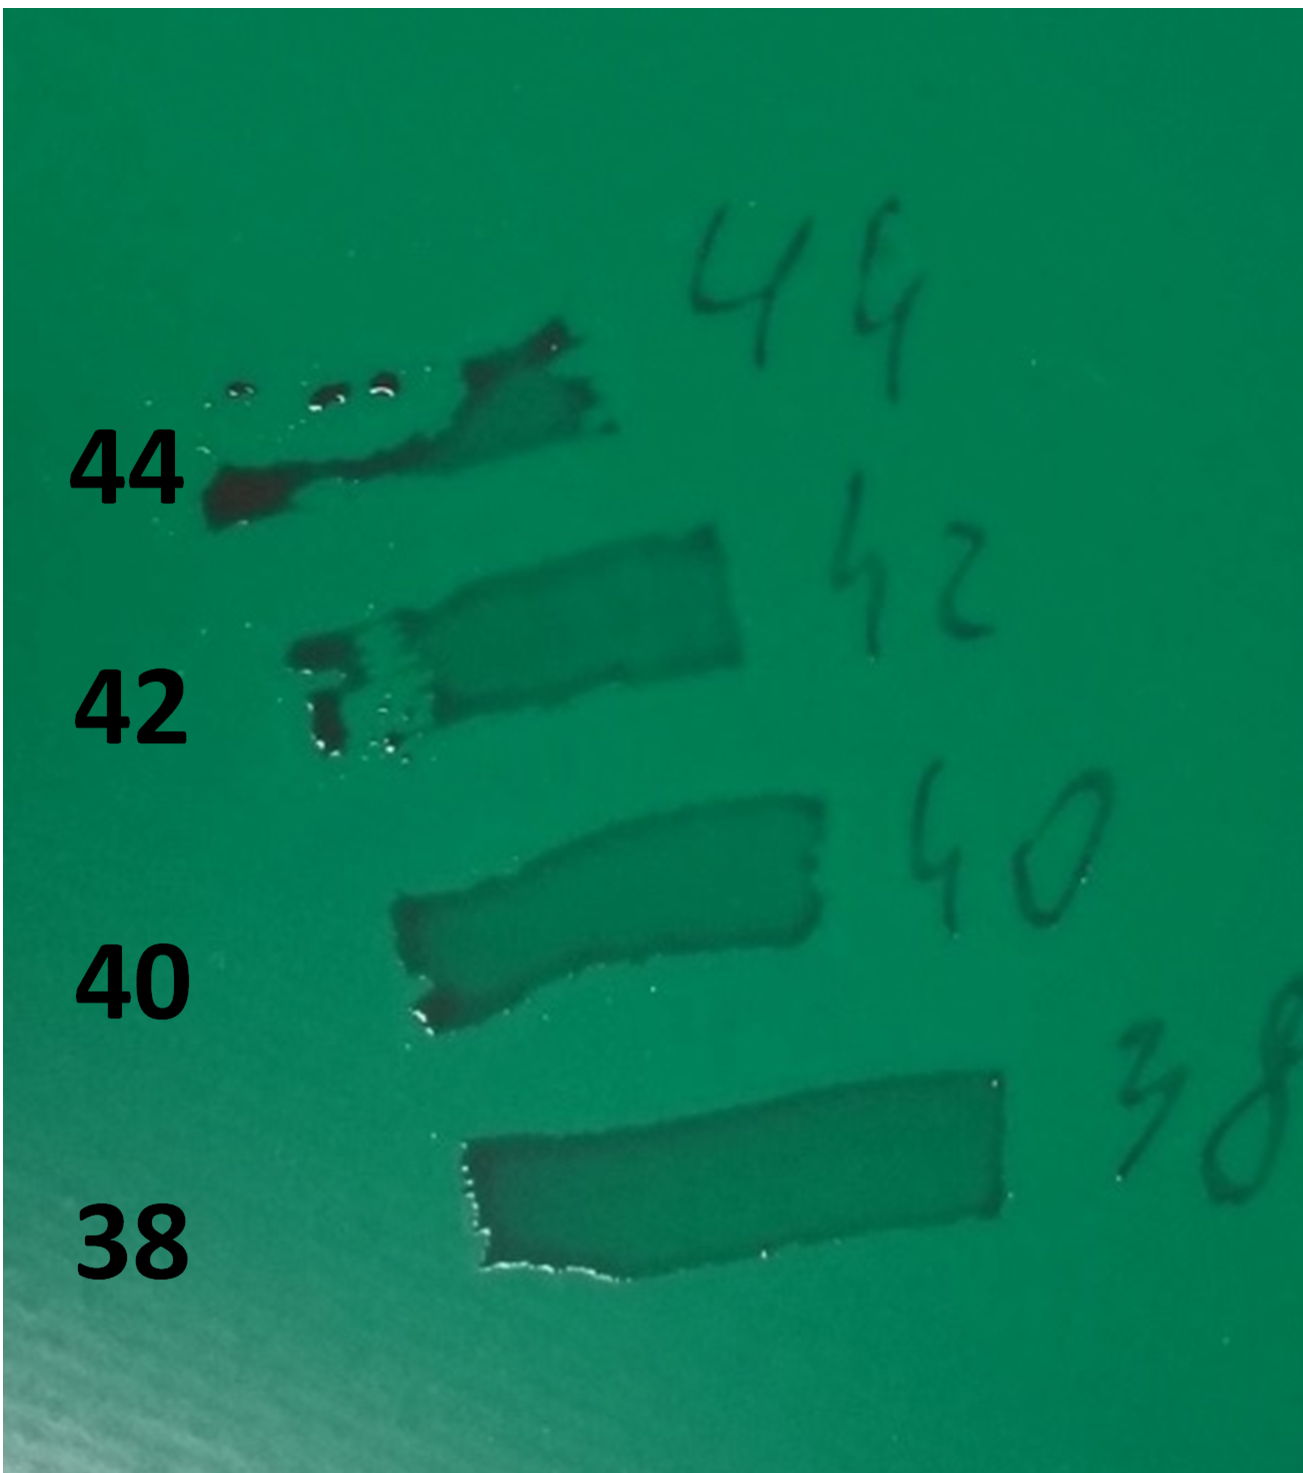 Figure 2. Surface energy measured by felt tip Dyne Pens